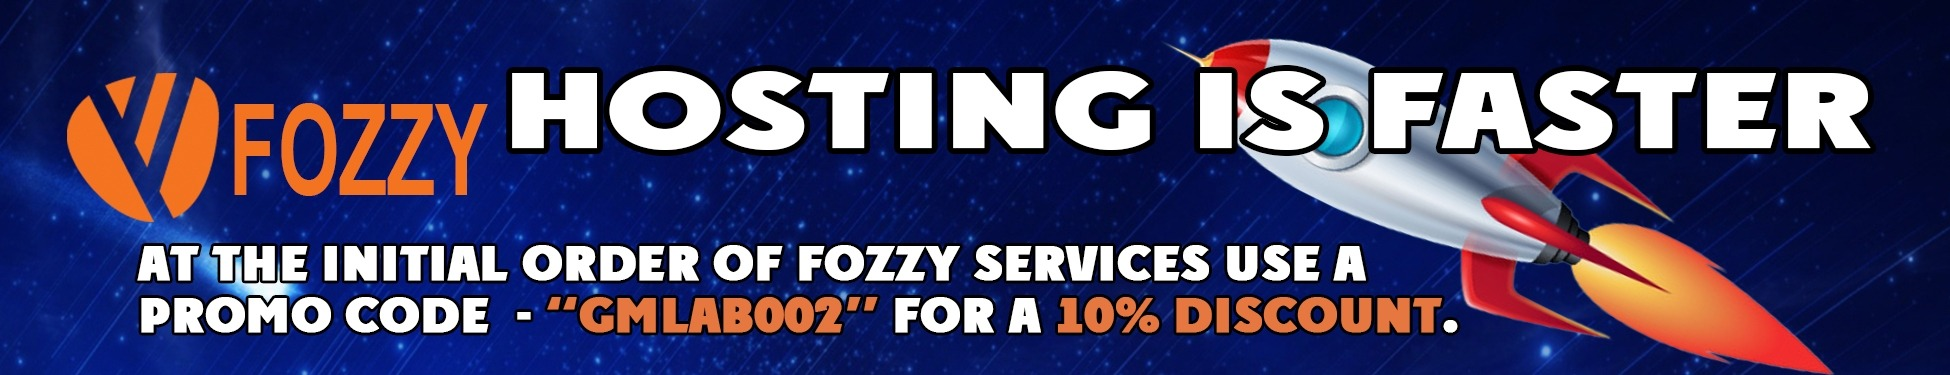 fozzy bunner BIG https://fozzy.com/aff.php?aff=1911